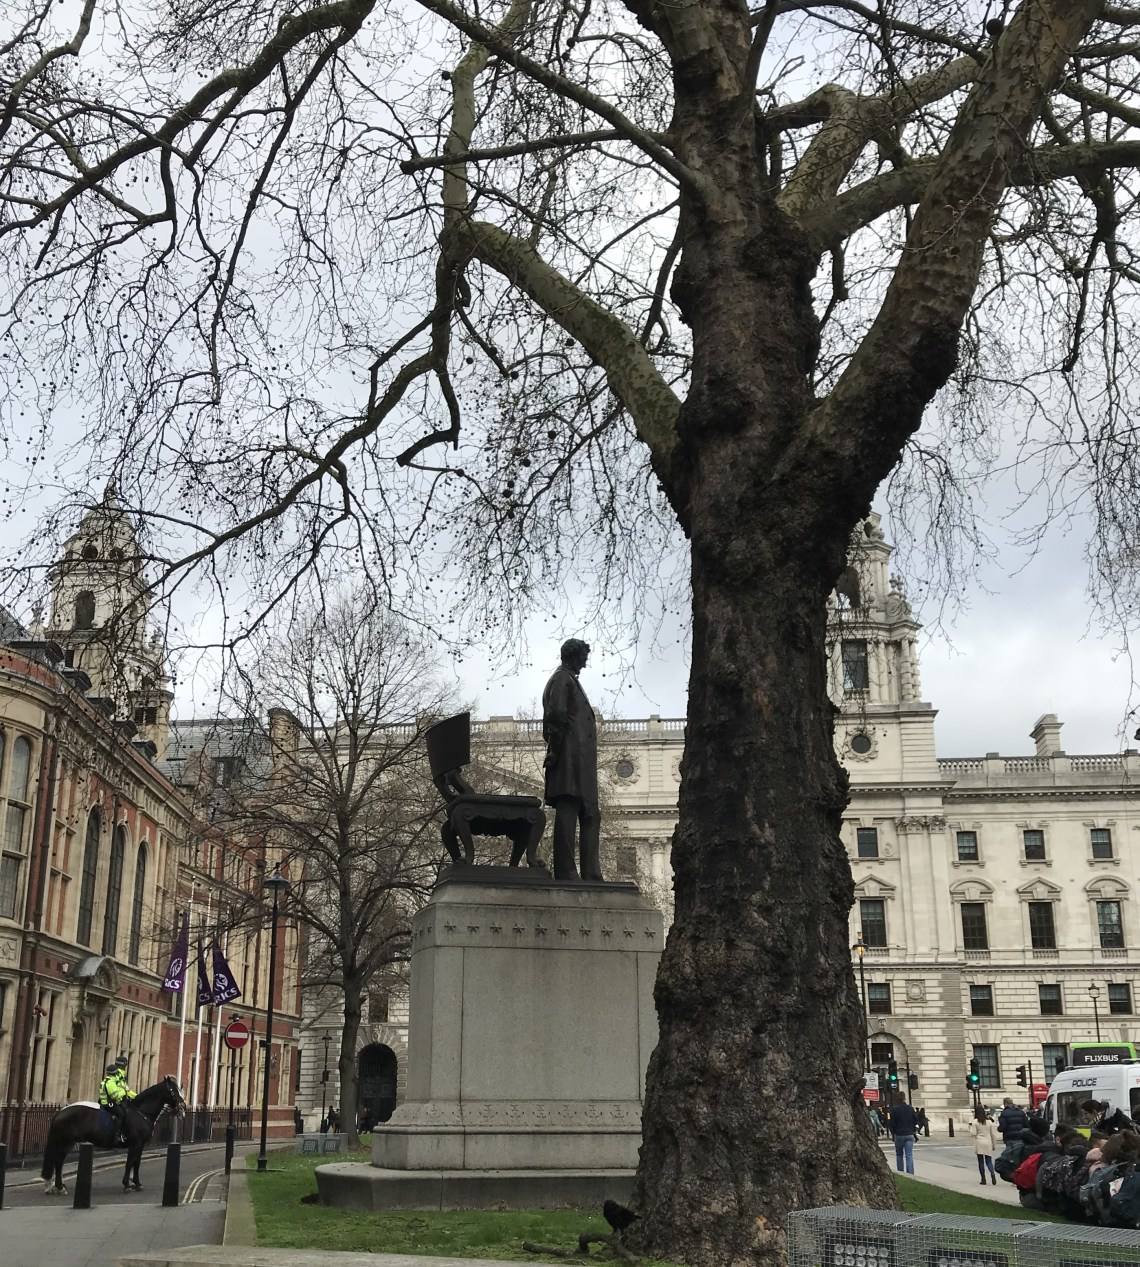 Statue of Abraham Lincoln in Parliament Square